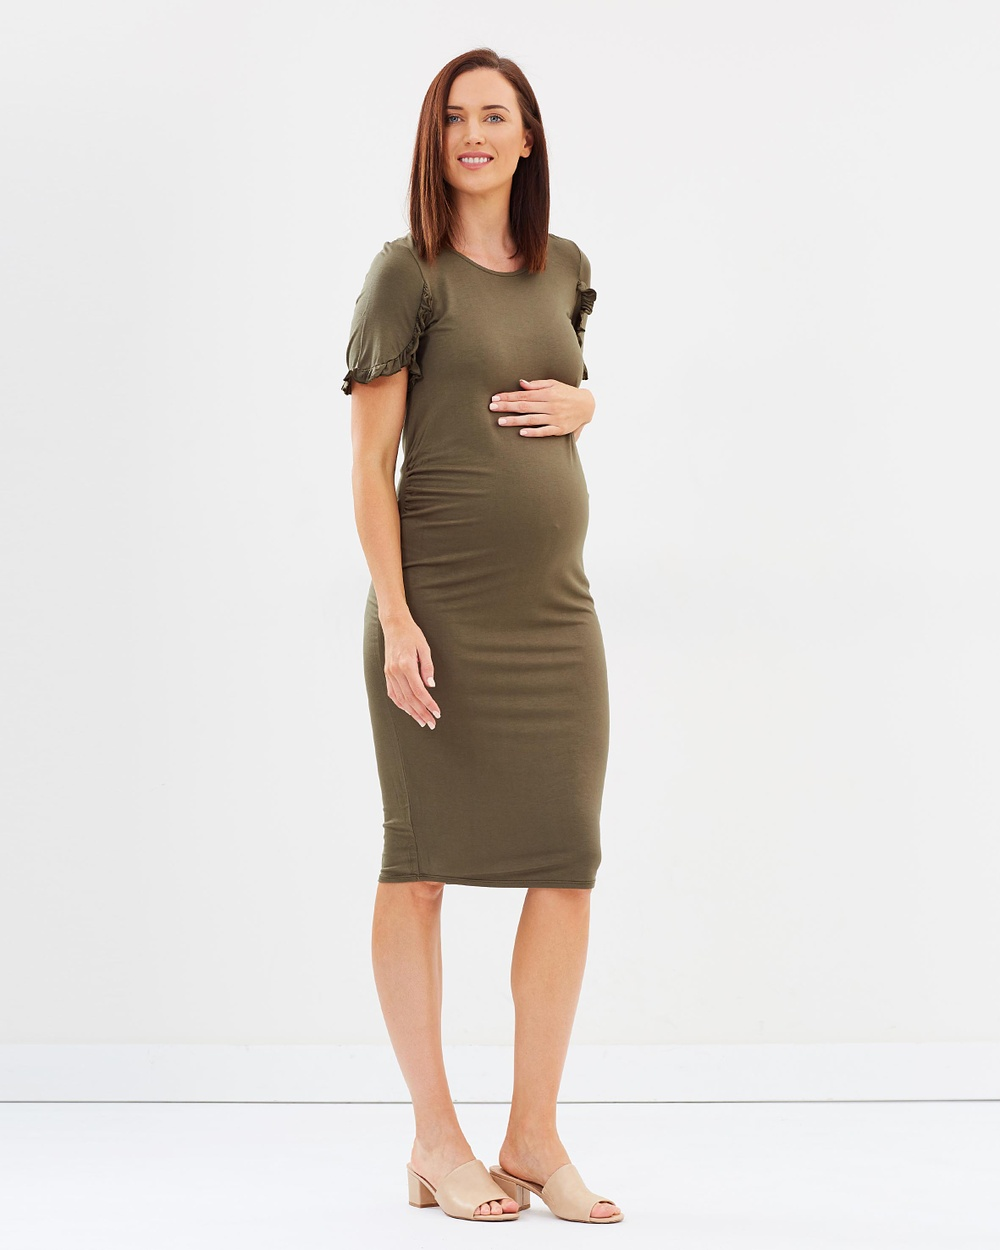 DP Maternity Ruffle Bodycon Dress Bodycon Dresses New Khaki Ruffle Bodycon Dress